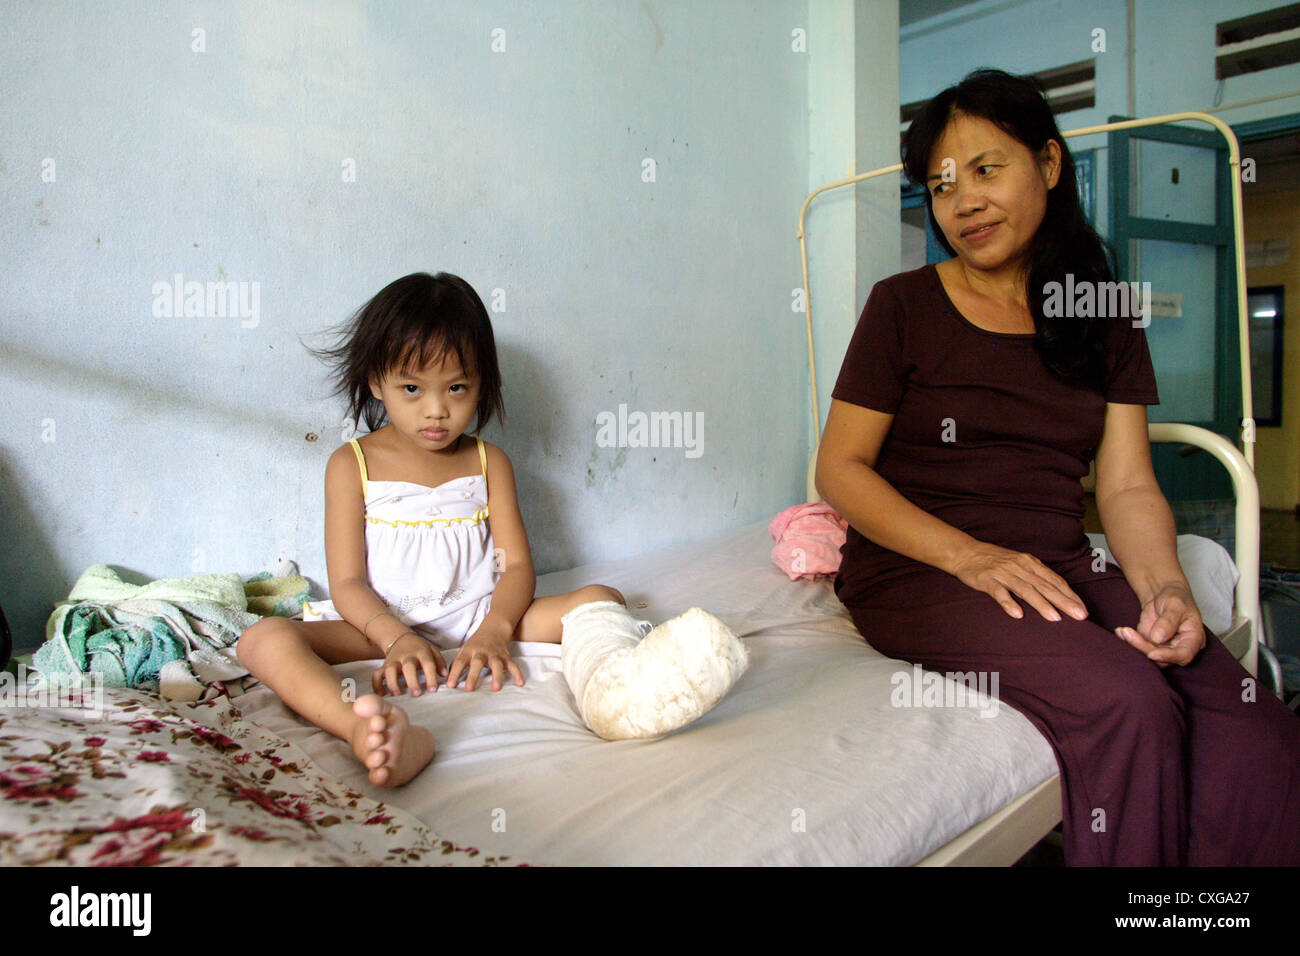 Girl with plaster foot in a hospital in Saigon - Stock Image